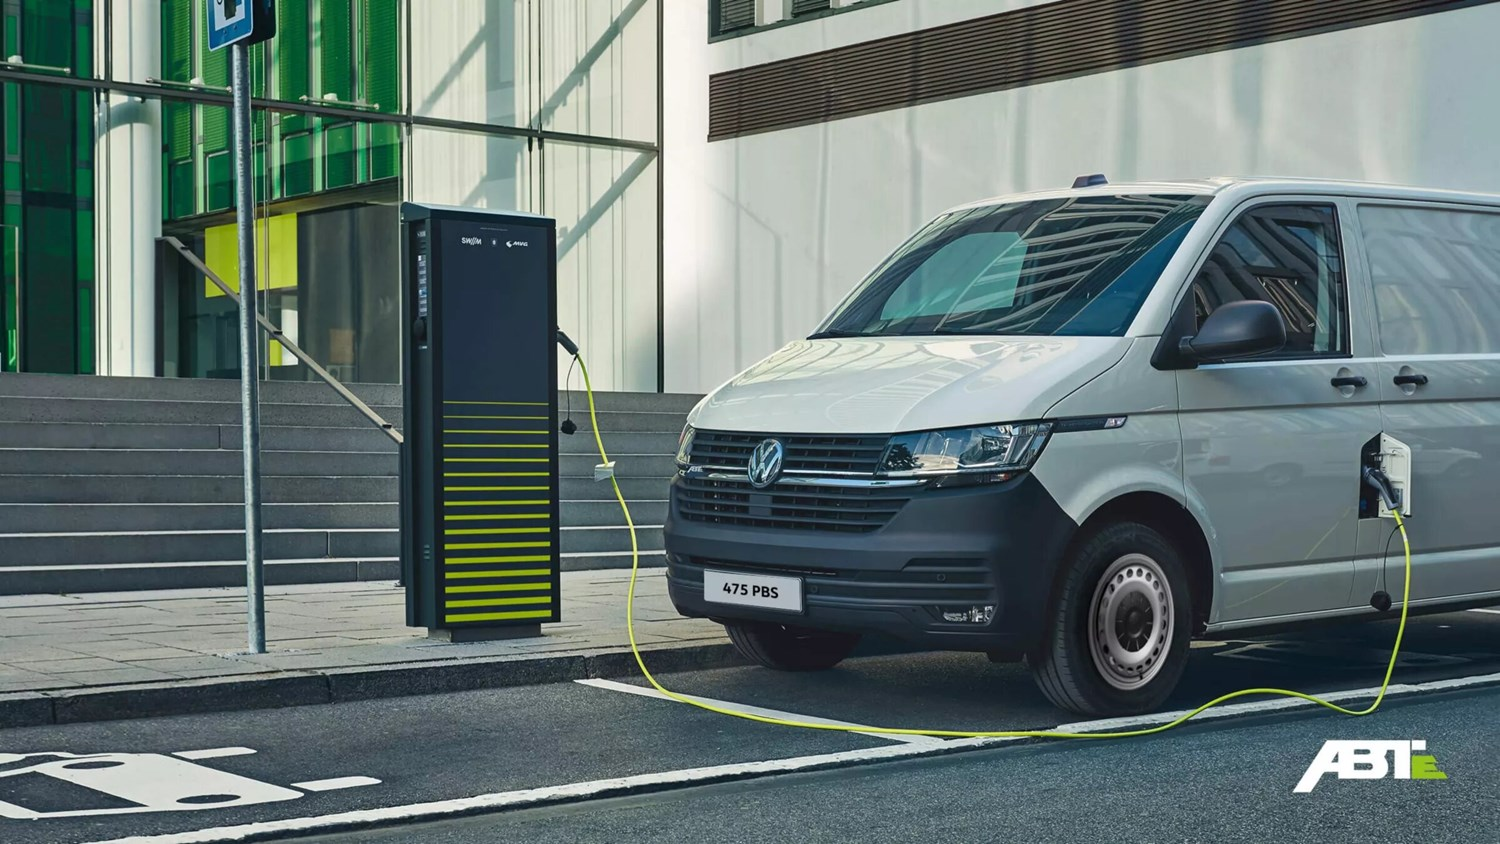 ABT e-Transporter plugged into a roadside charger in front of glass office building